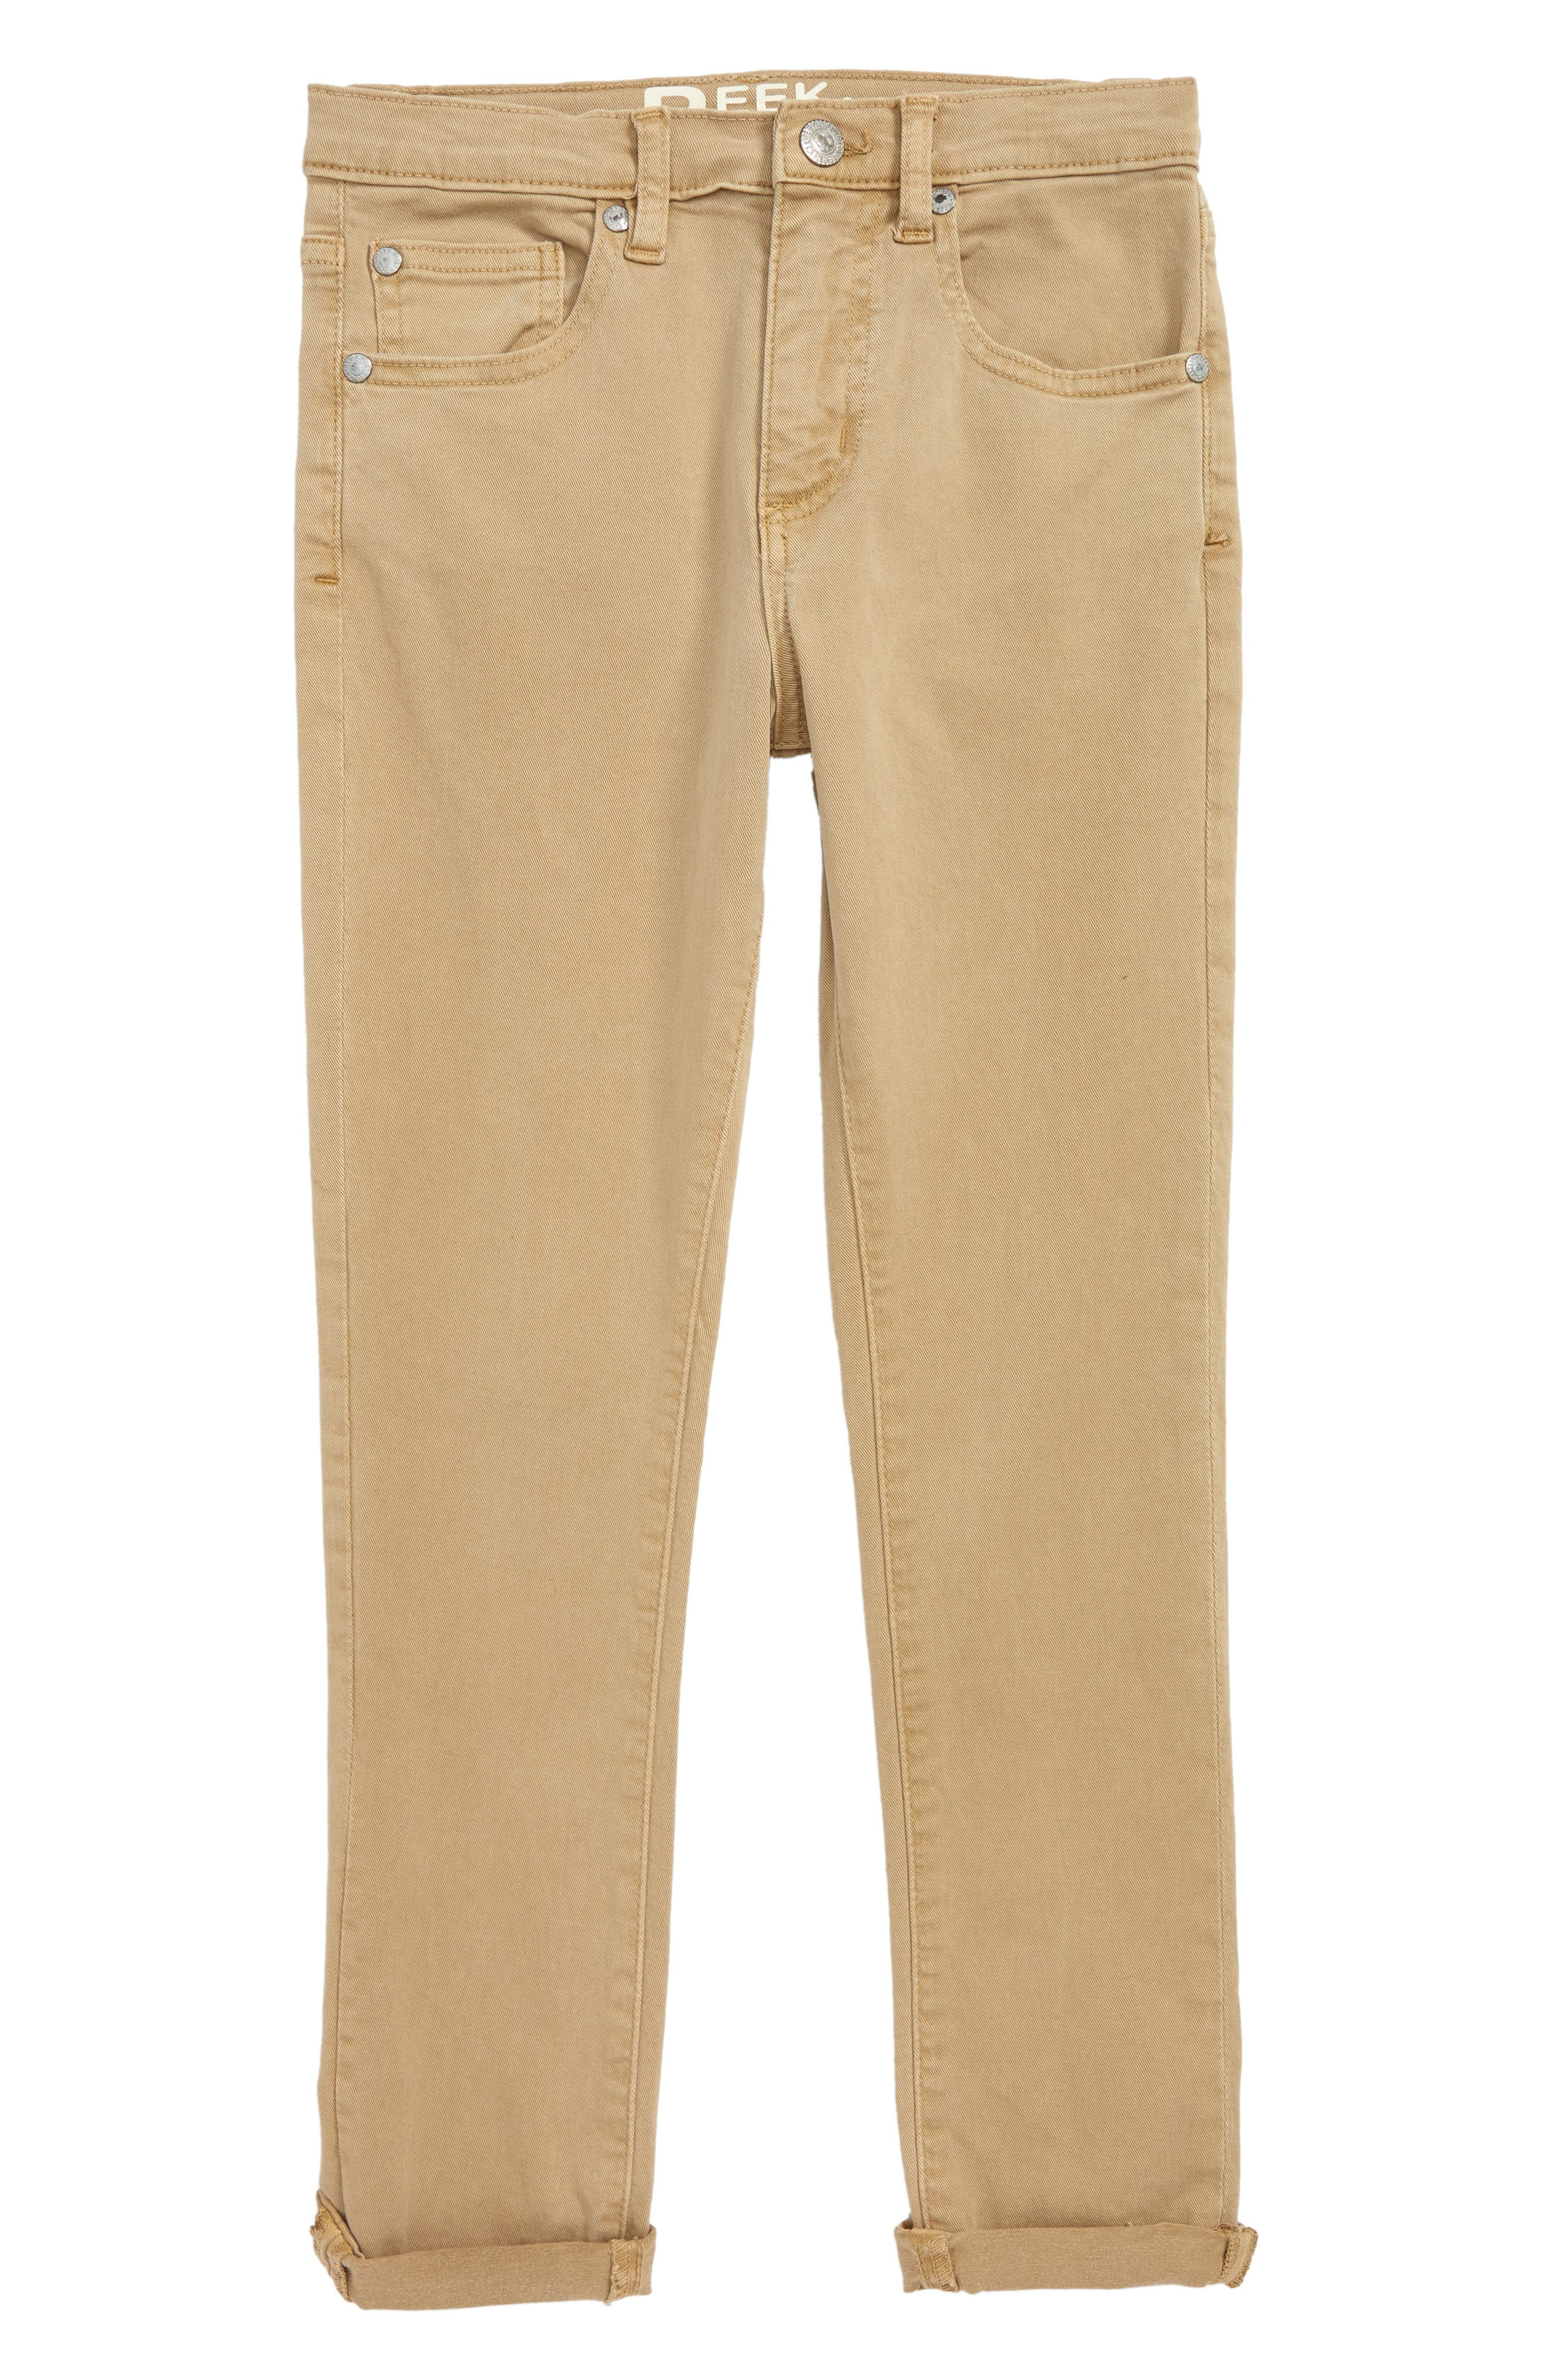 Slouch Twill Jeans,                         Main,                         color, 250